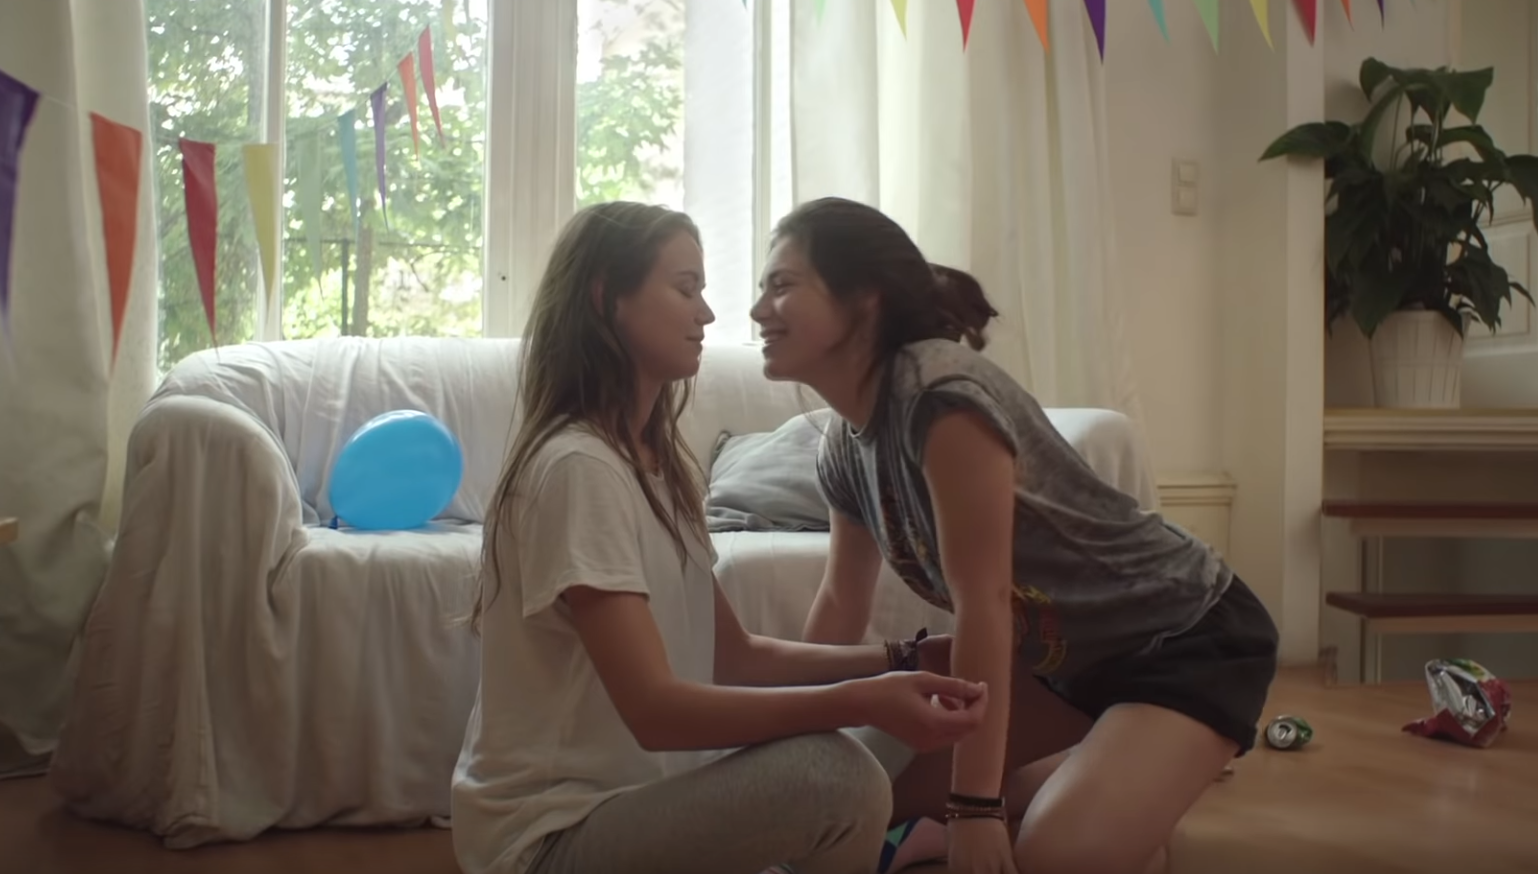 Another fun lesbian webseries Anne +